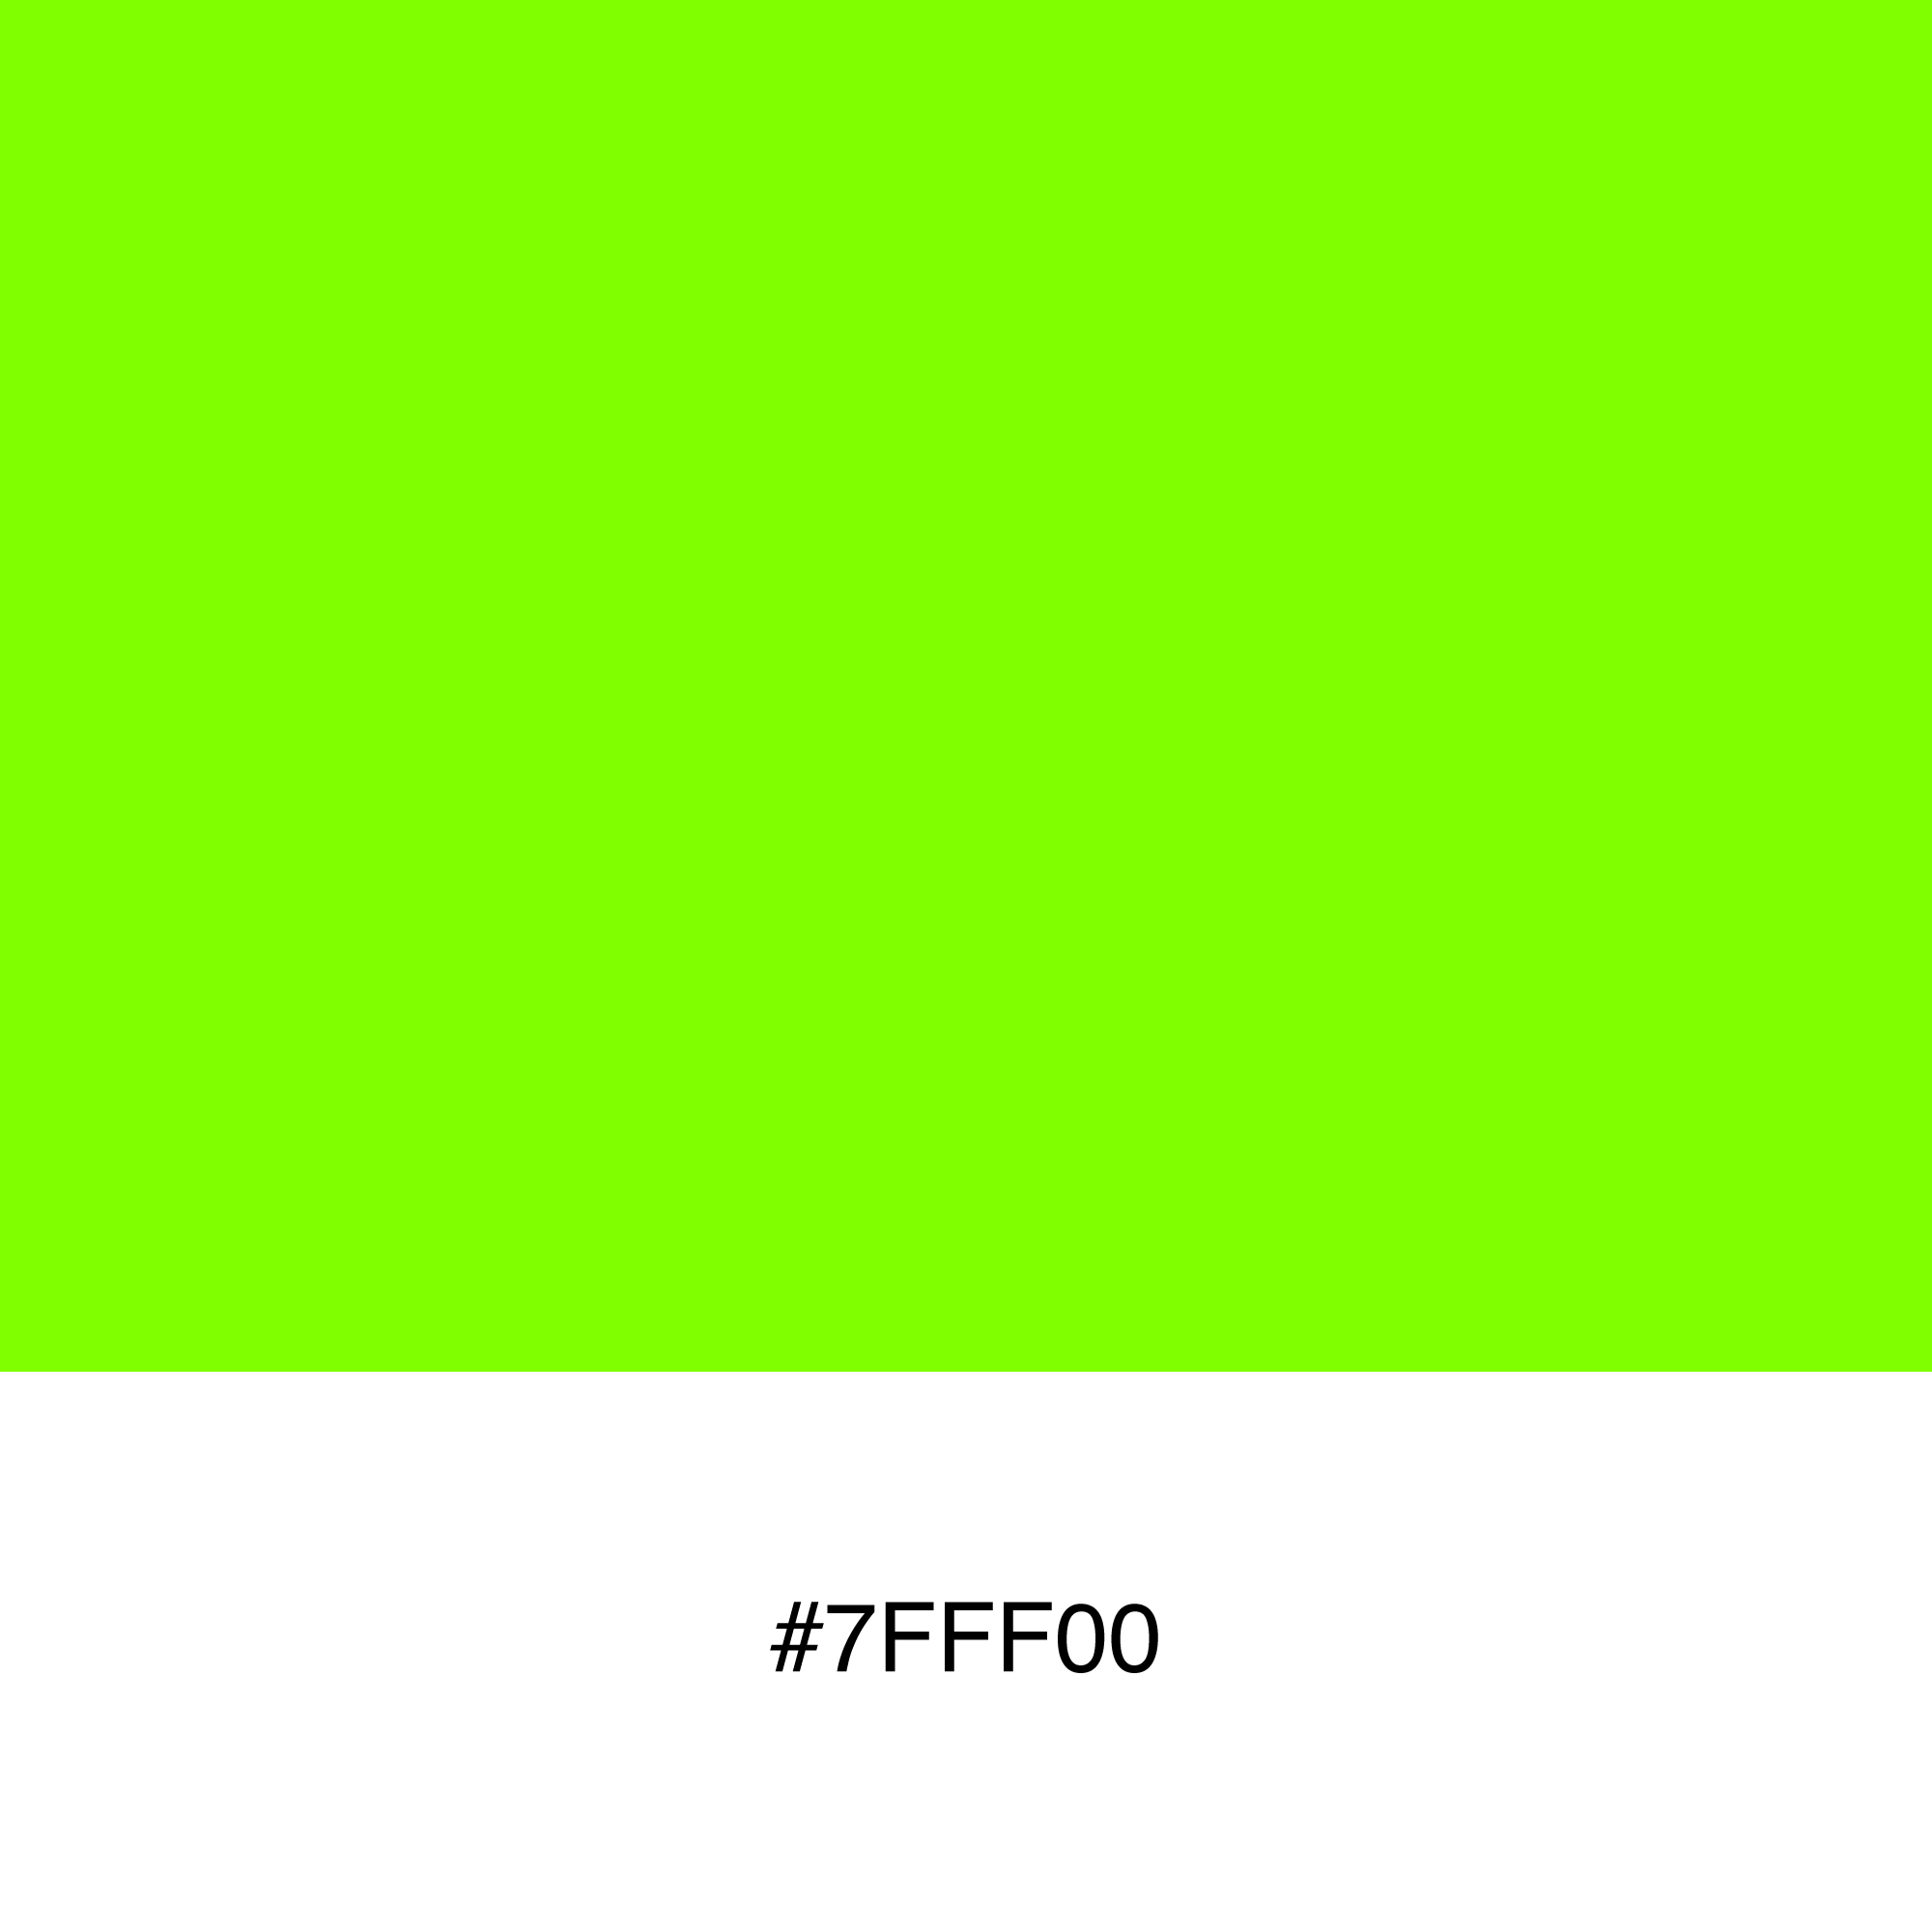 color-swatch-7fff00